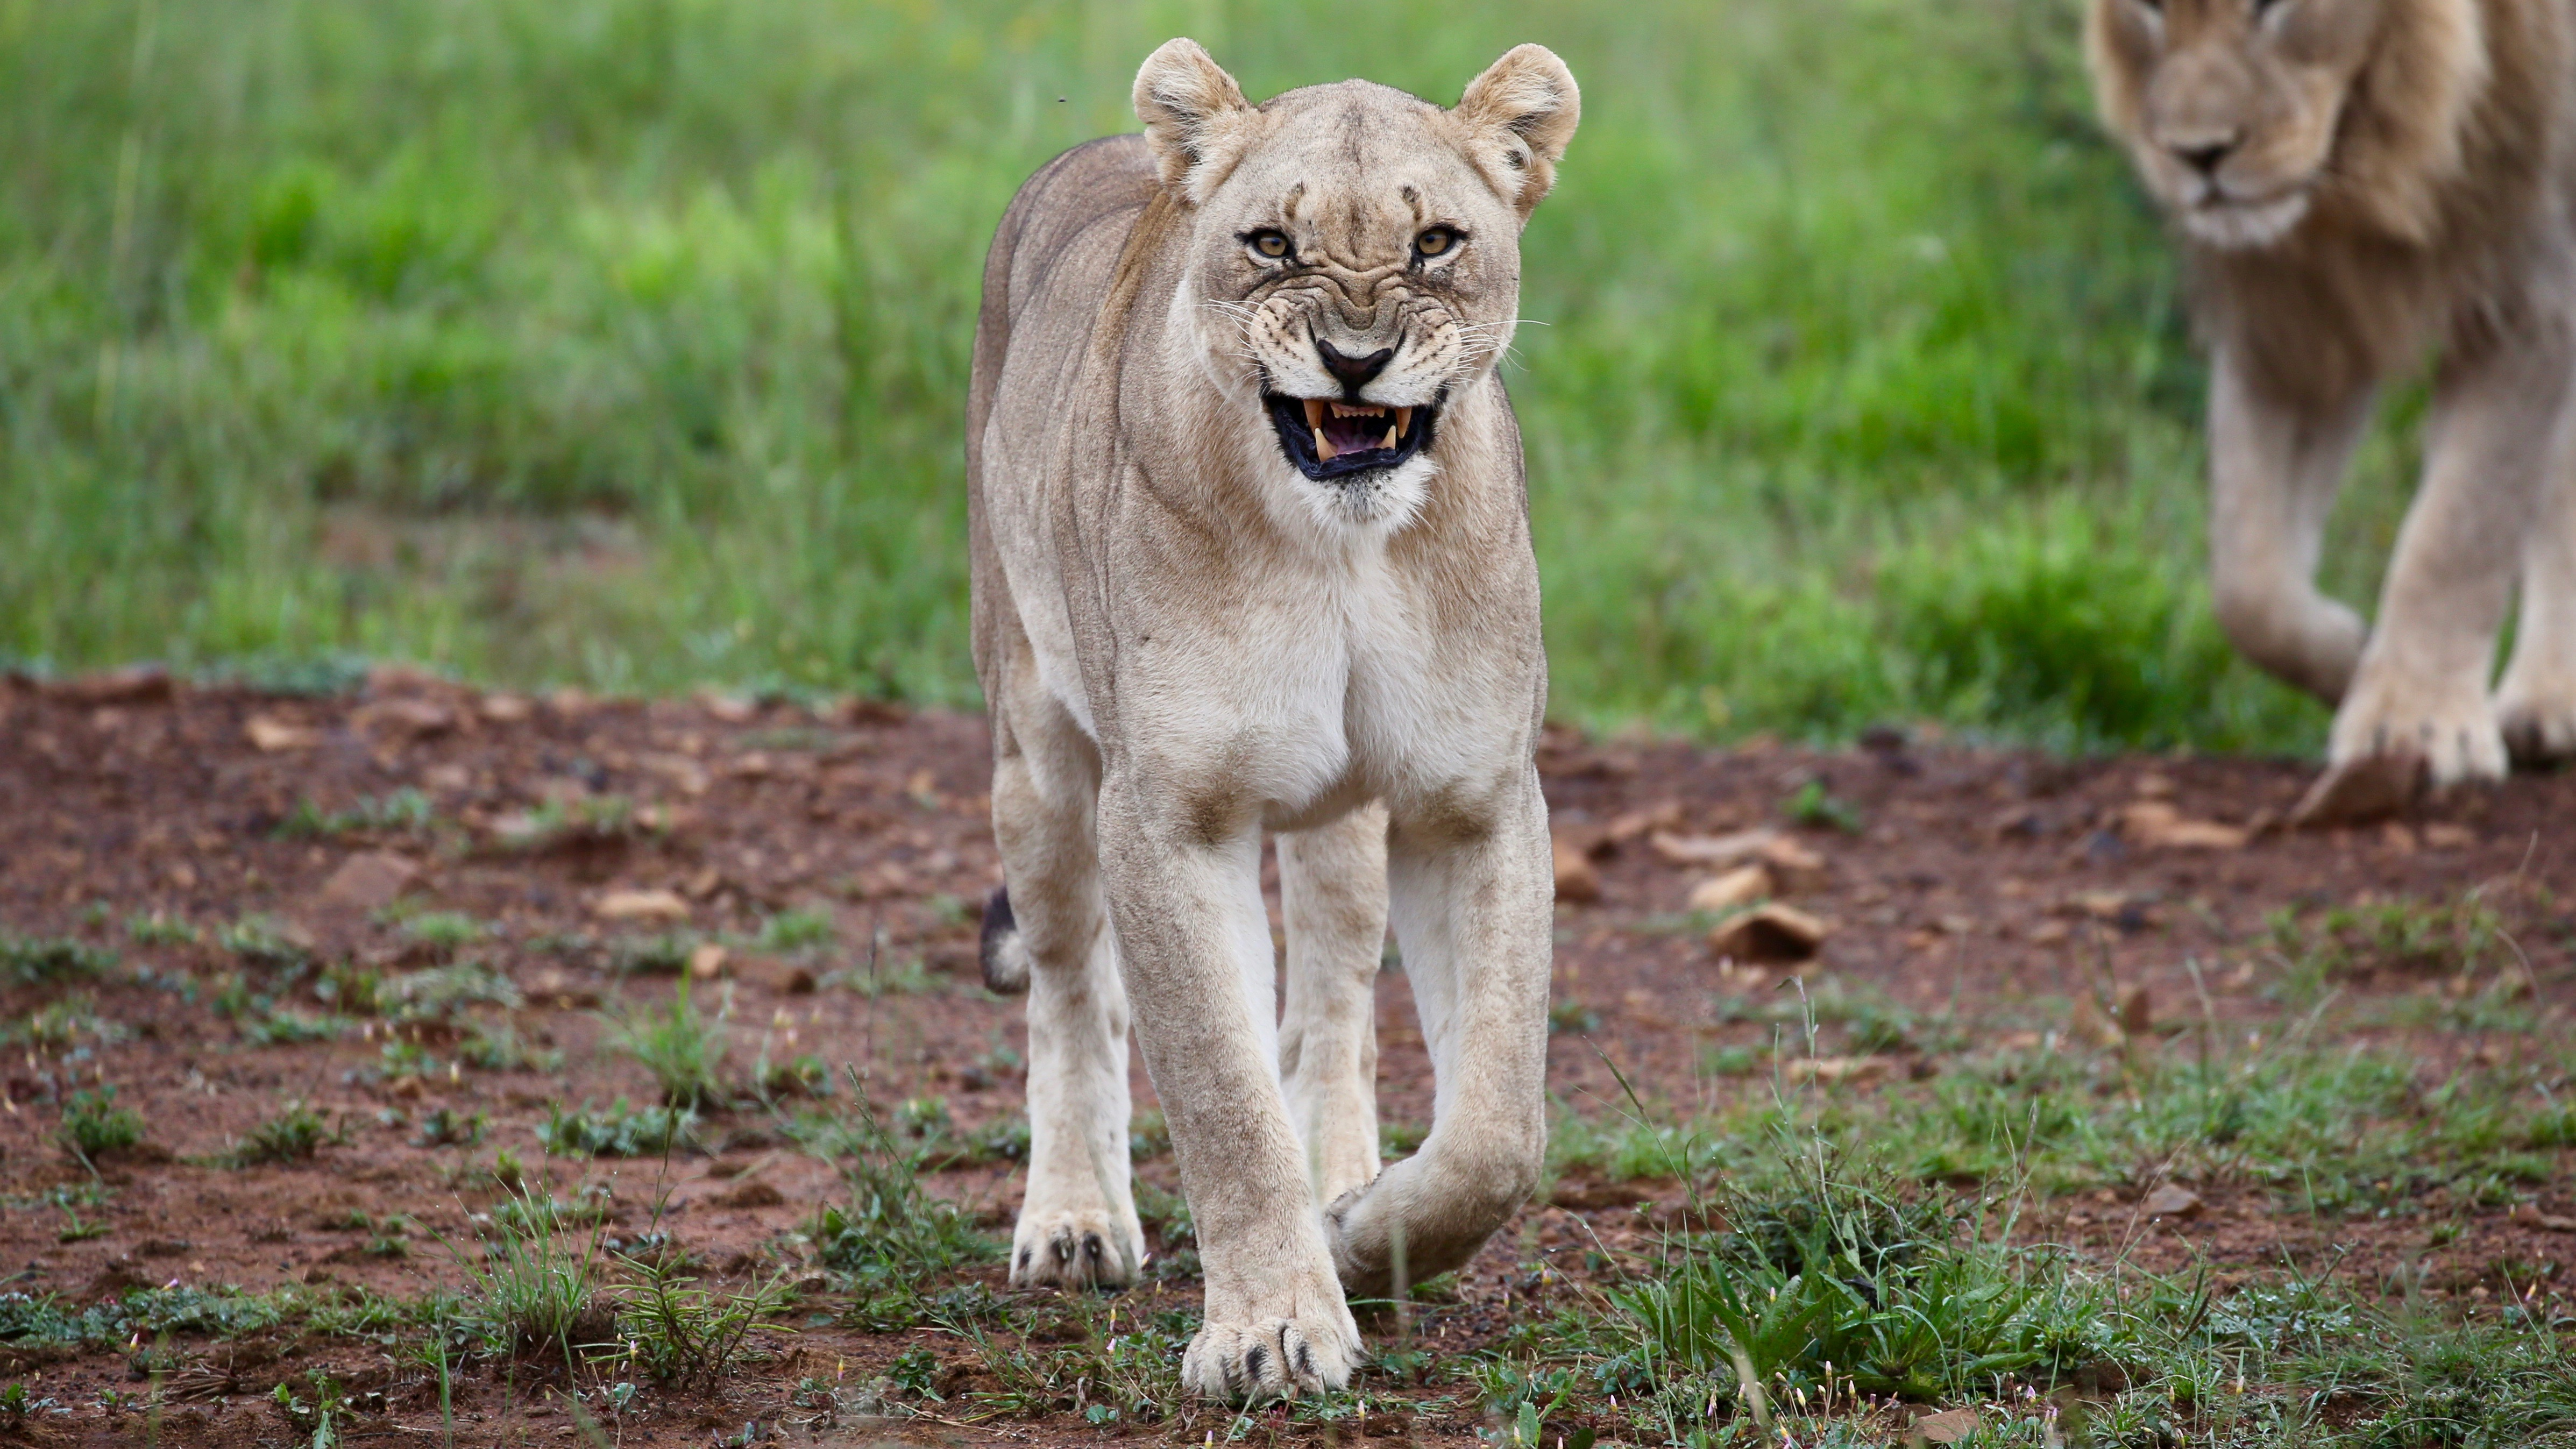 92408 download wallpaper Animals, Lioness, Big Cat, Rage screensavers and pictures for free